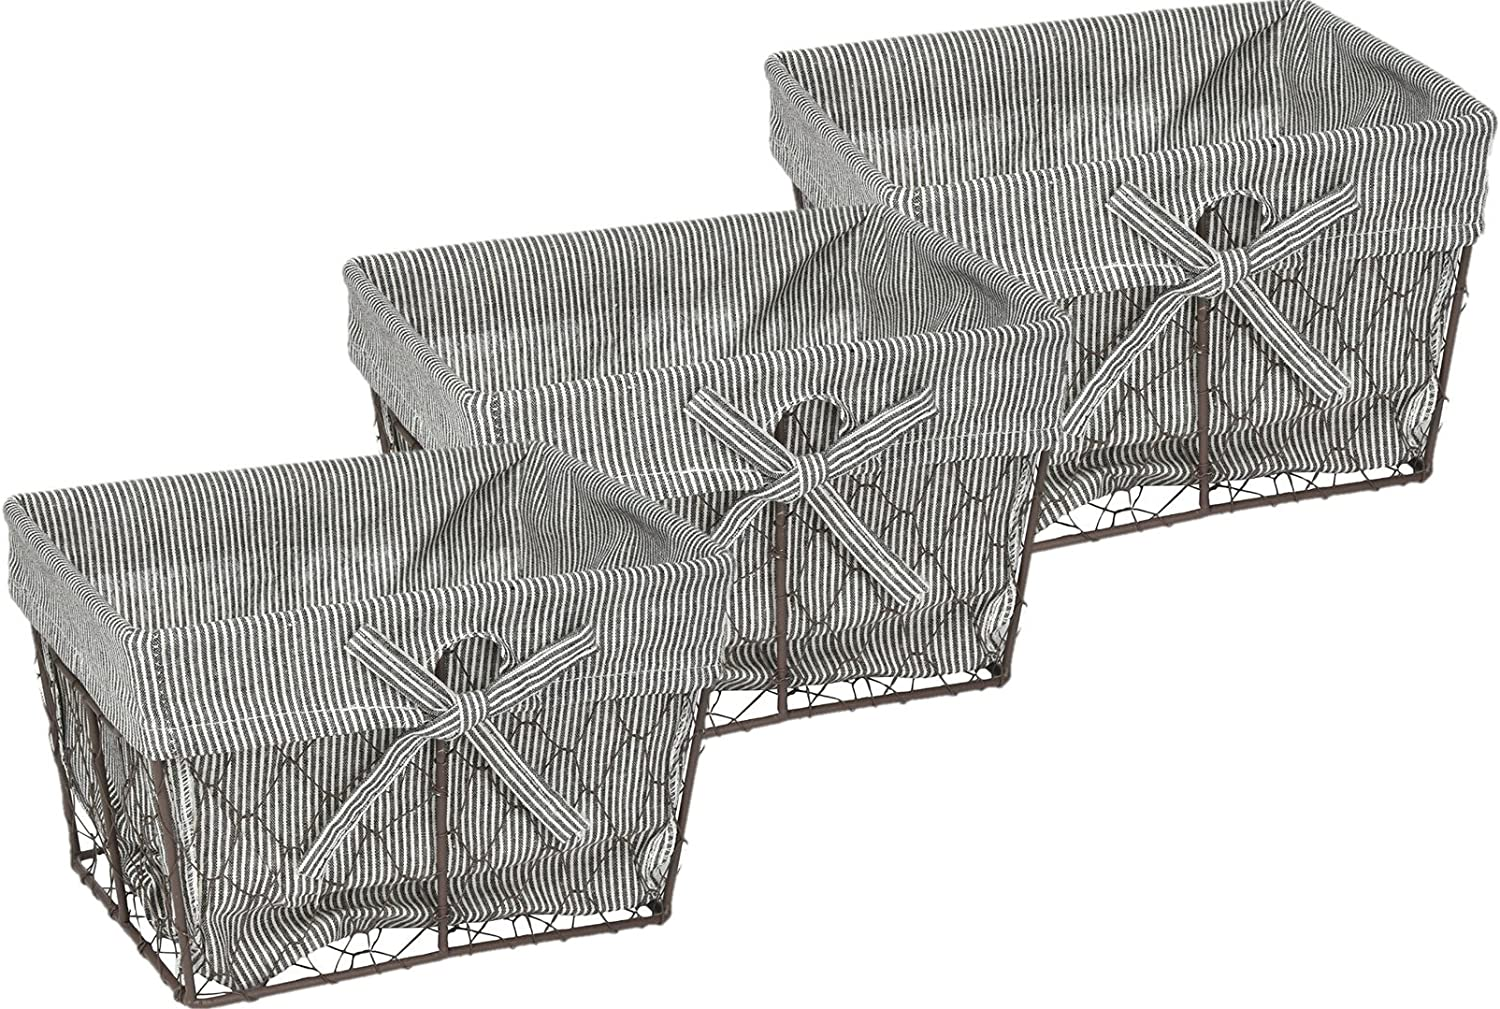 DII COMINHKPR137416Vintage Chicken Wire Baskets for Storage Removable Fabric Liner, Set of 3, Stripes, 3 Piece